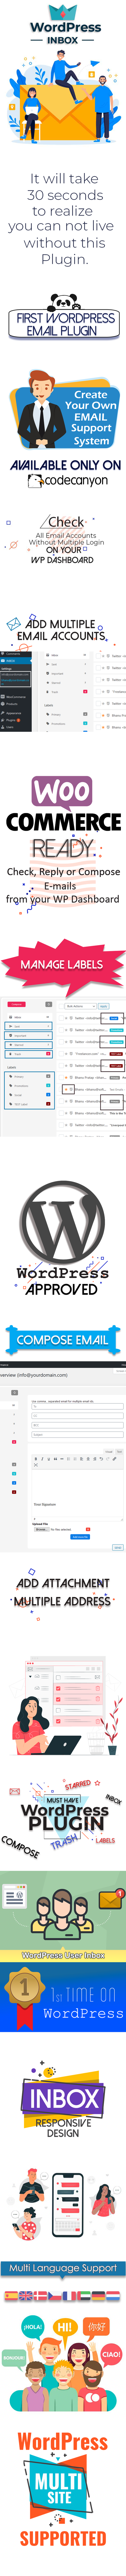 WordPress INBOX - 1